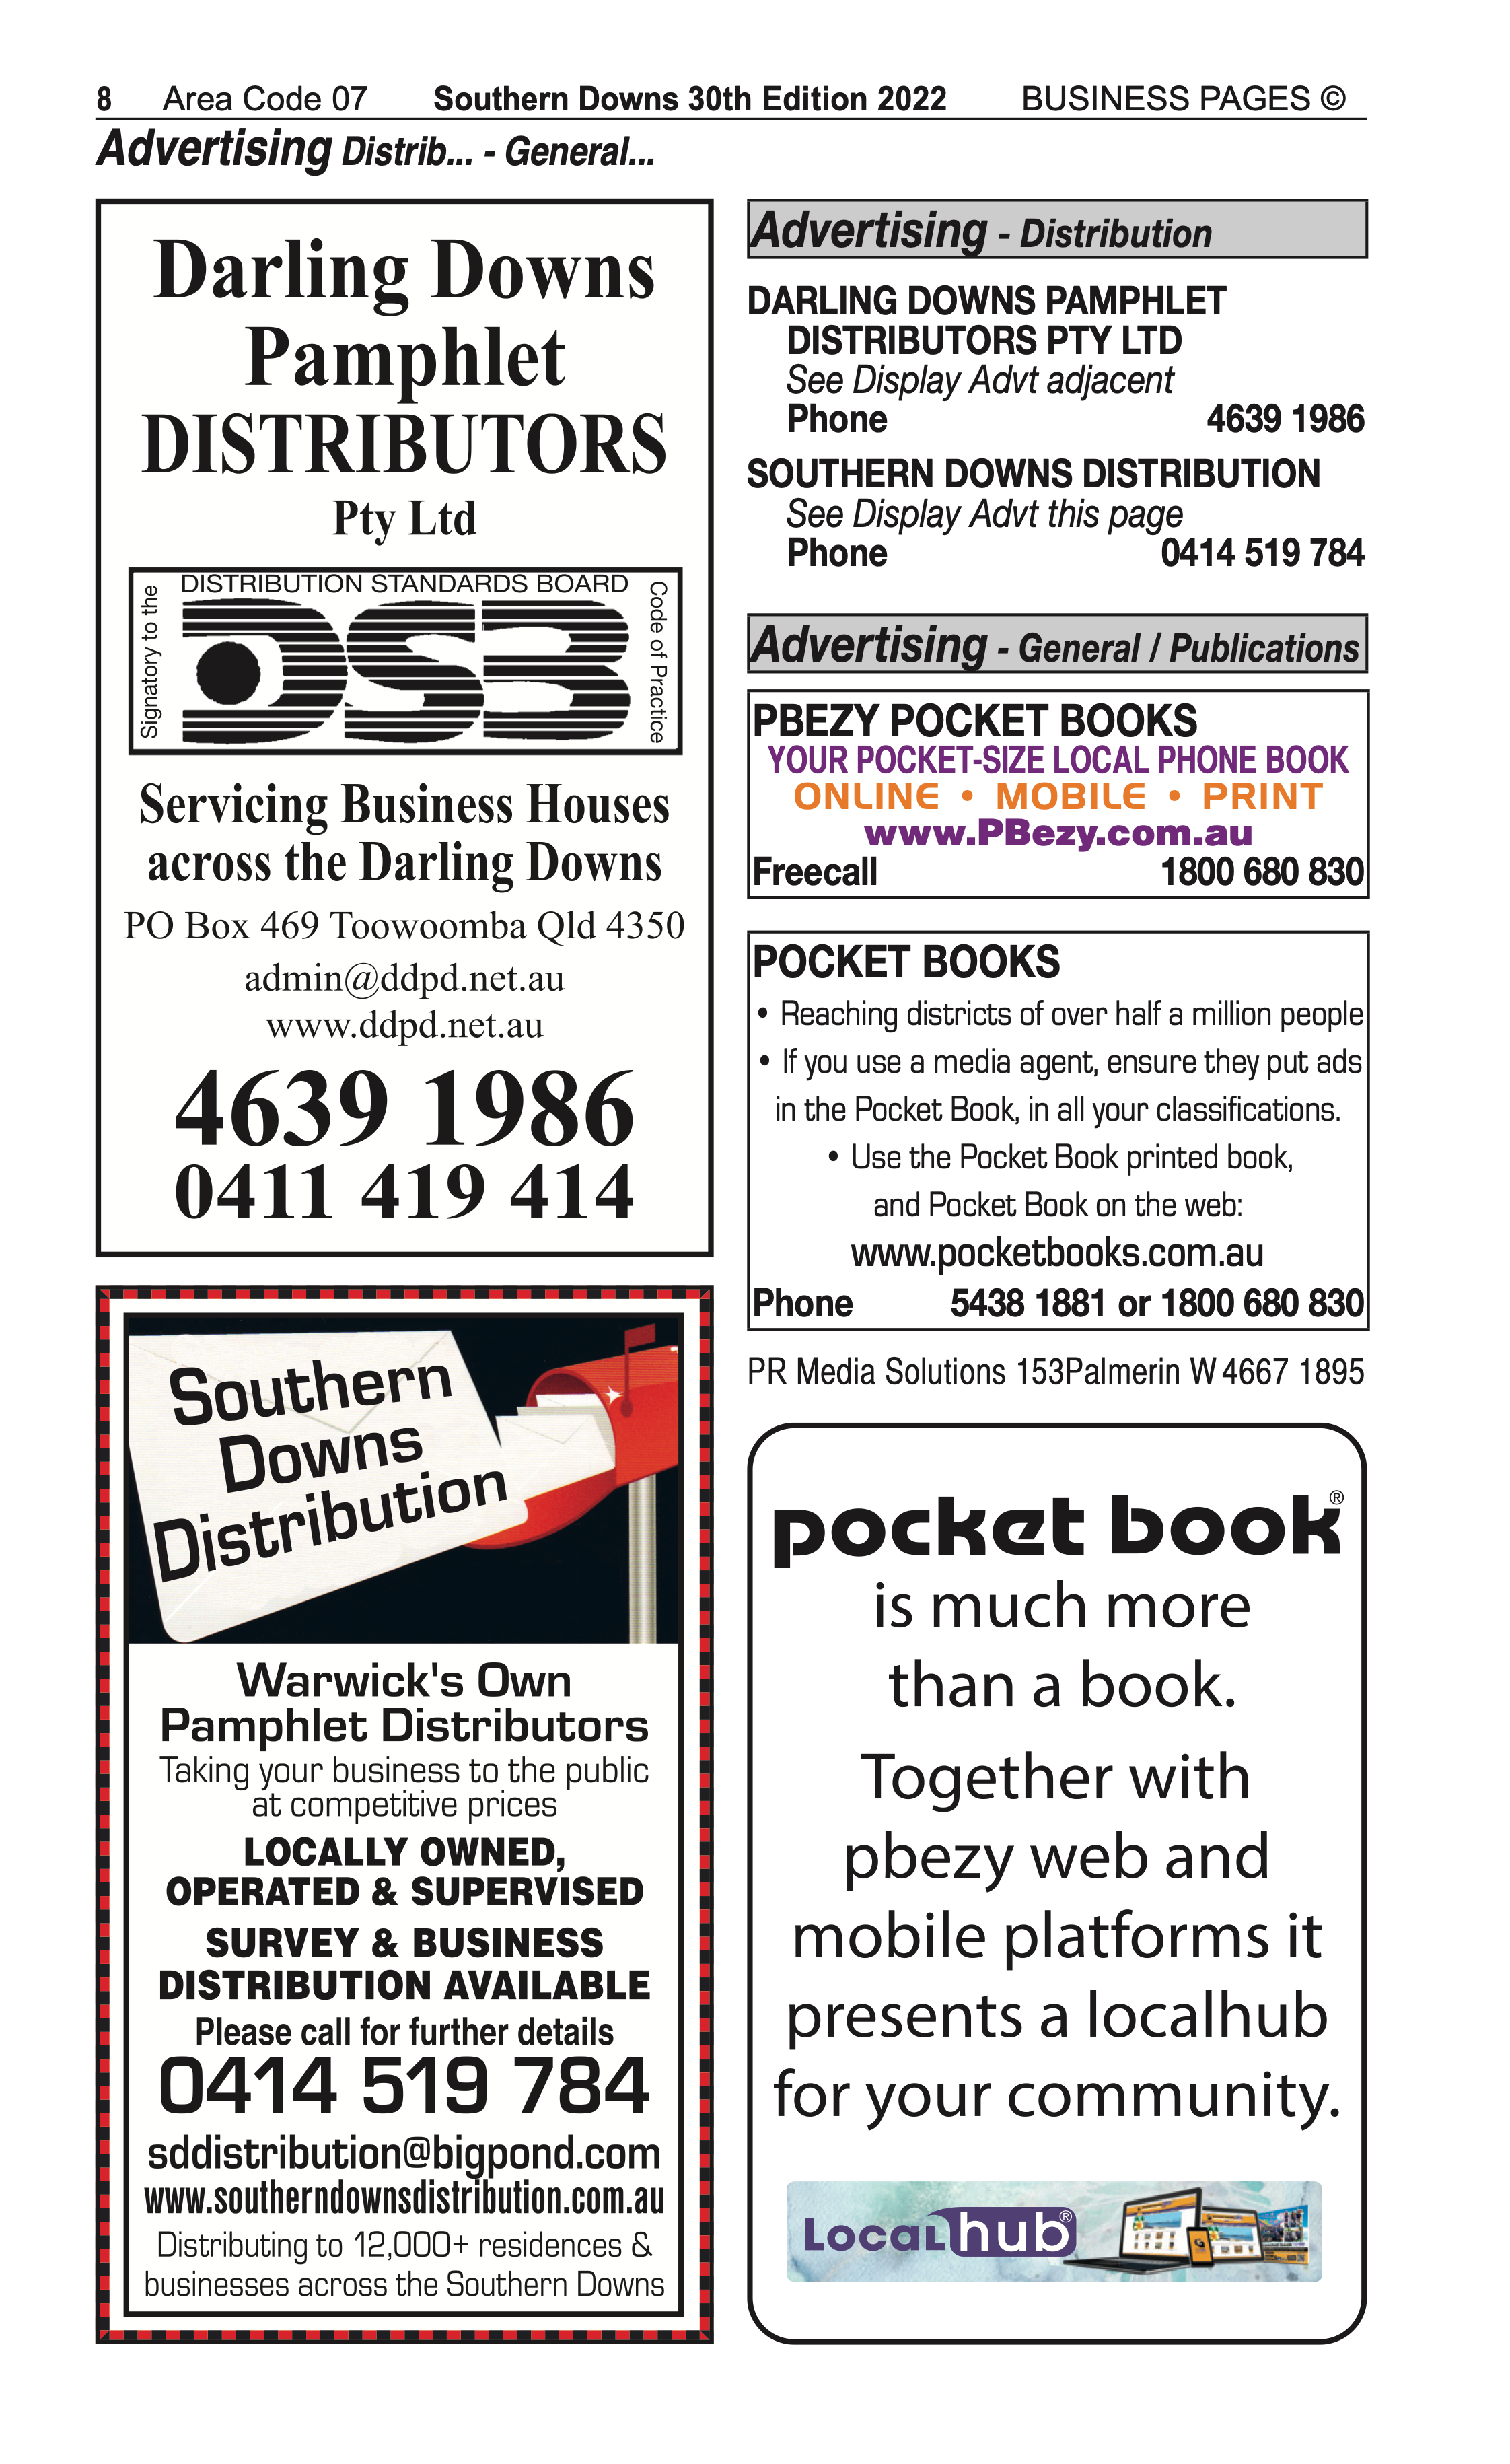 Darling Downs Pamphlet Distributors | Advertising Distribution in Toowoomba | PBezy Pocket Books local directories - page 8